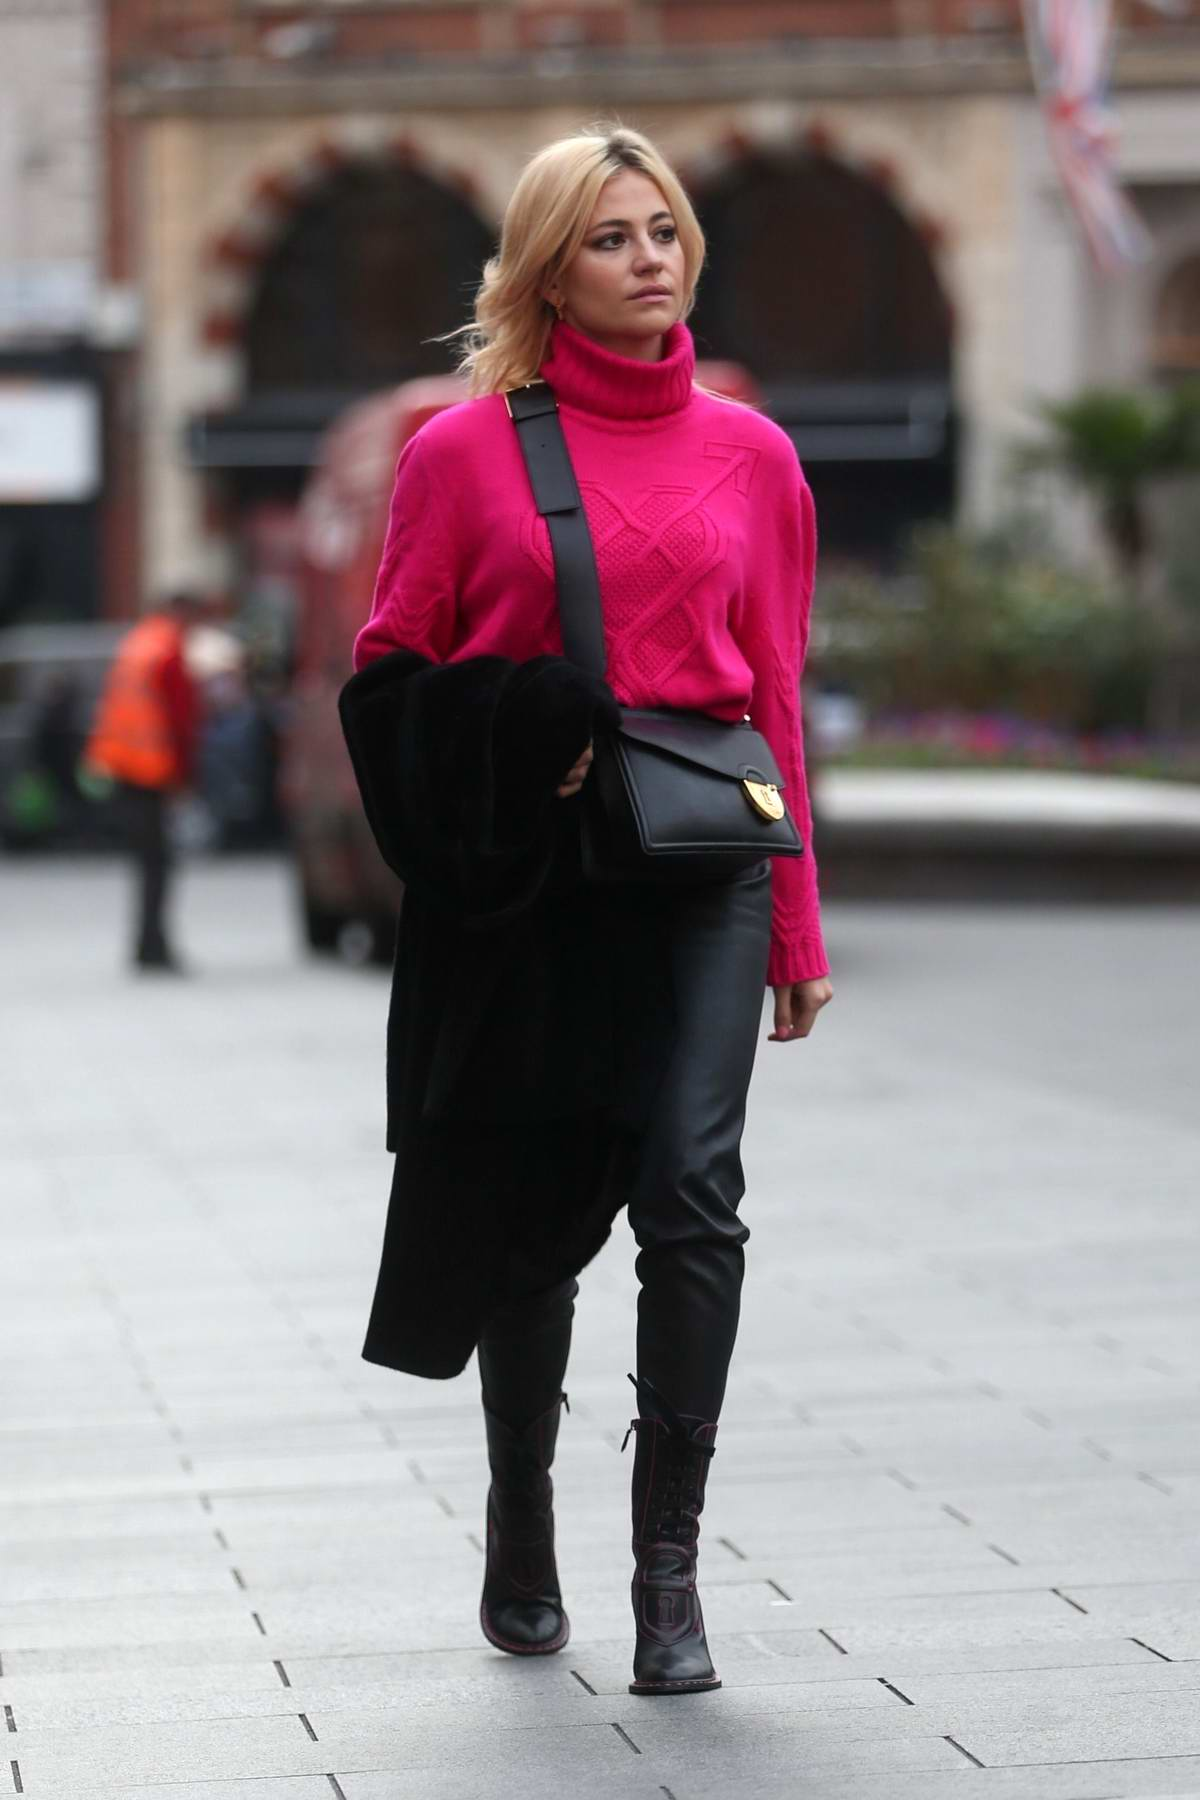 Pixie Lott looks pretty in pink as she arrives with Mabel to Global Radio studios in London, UK